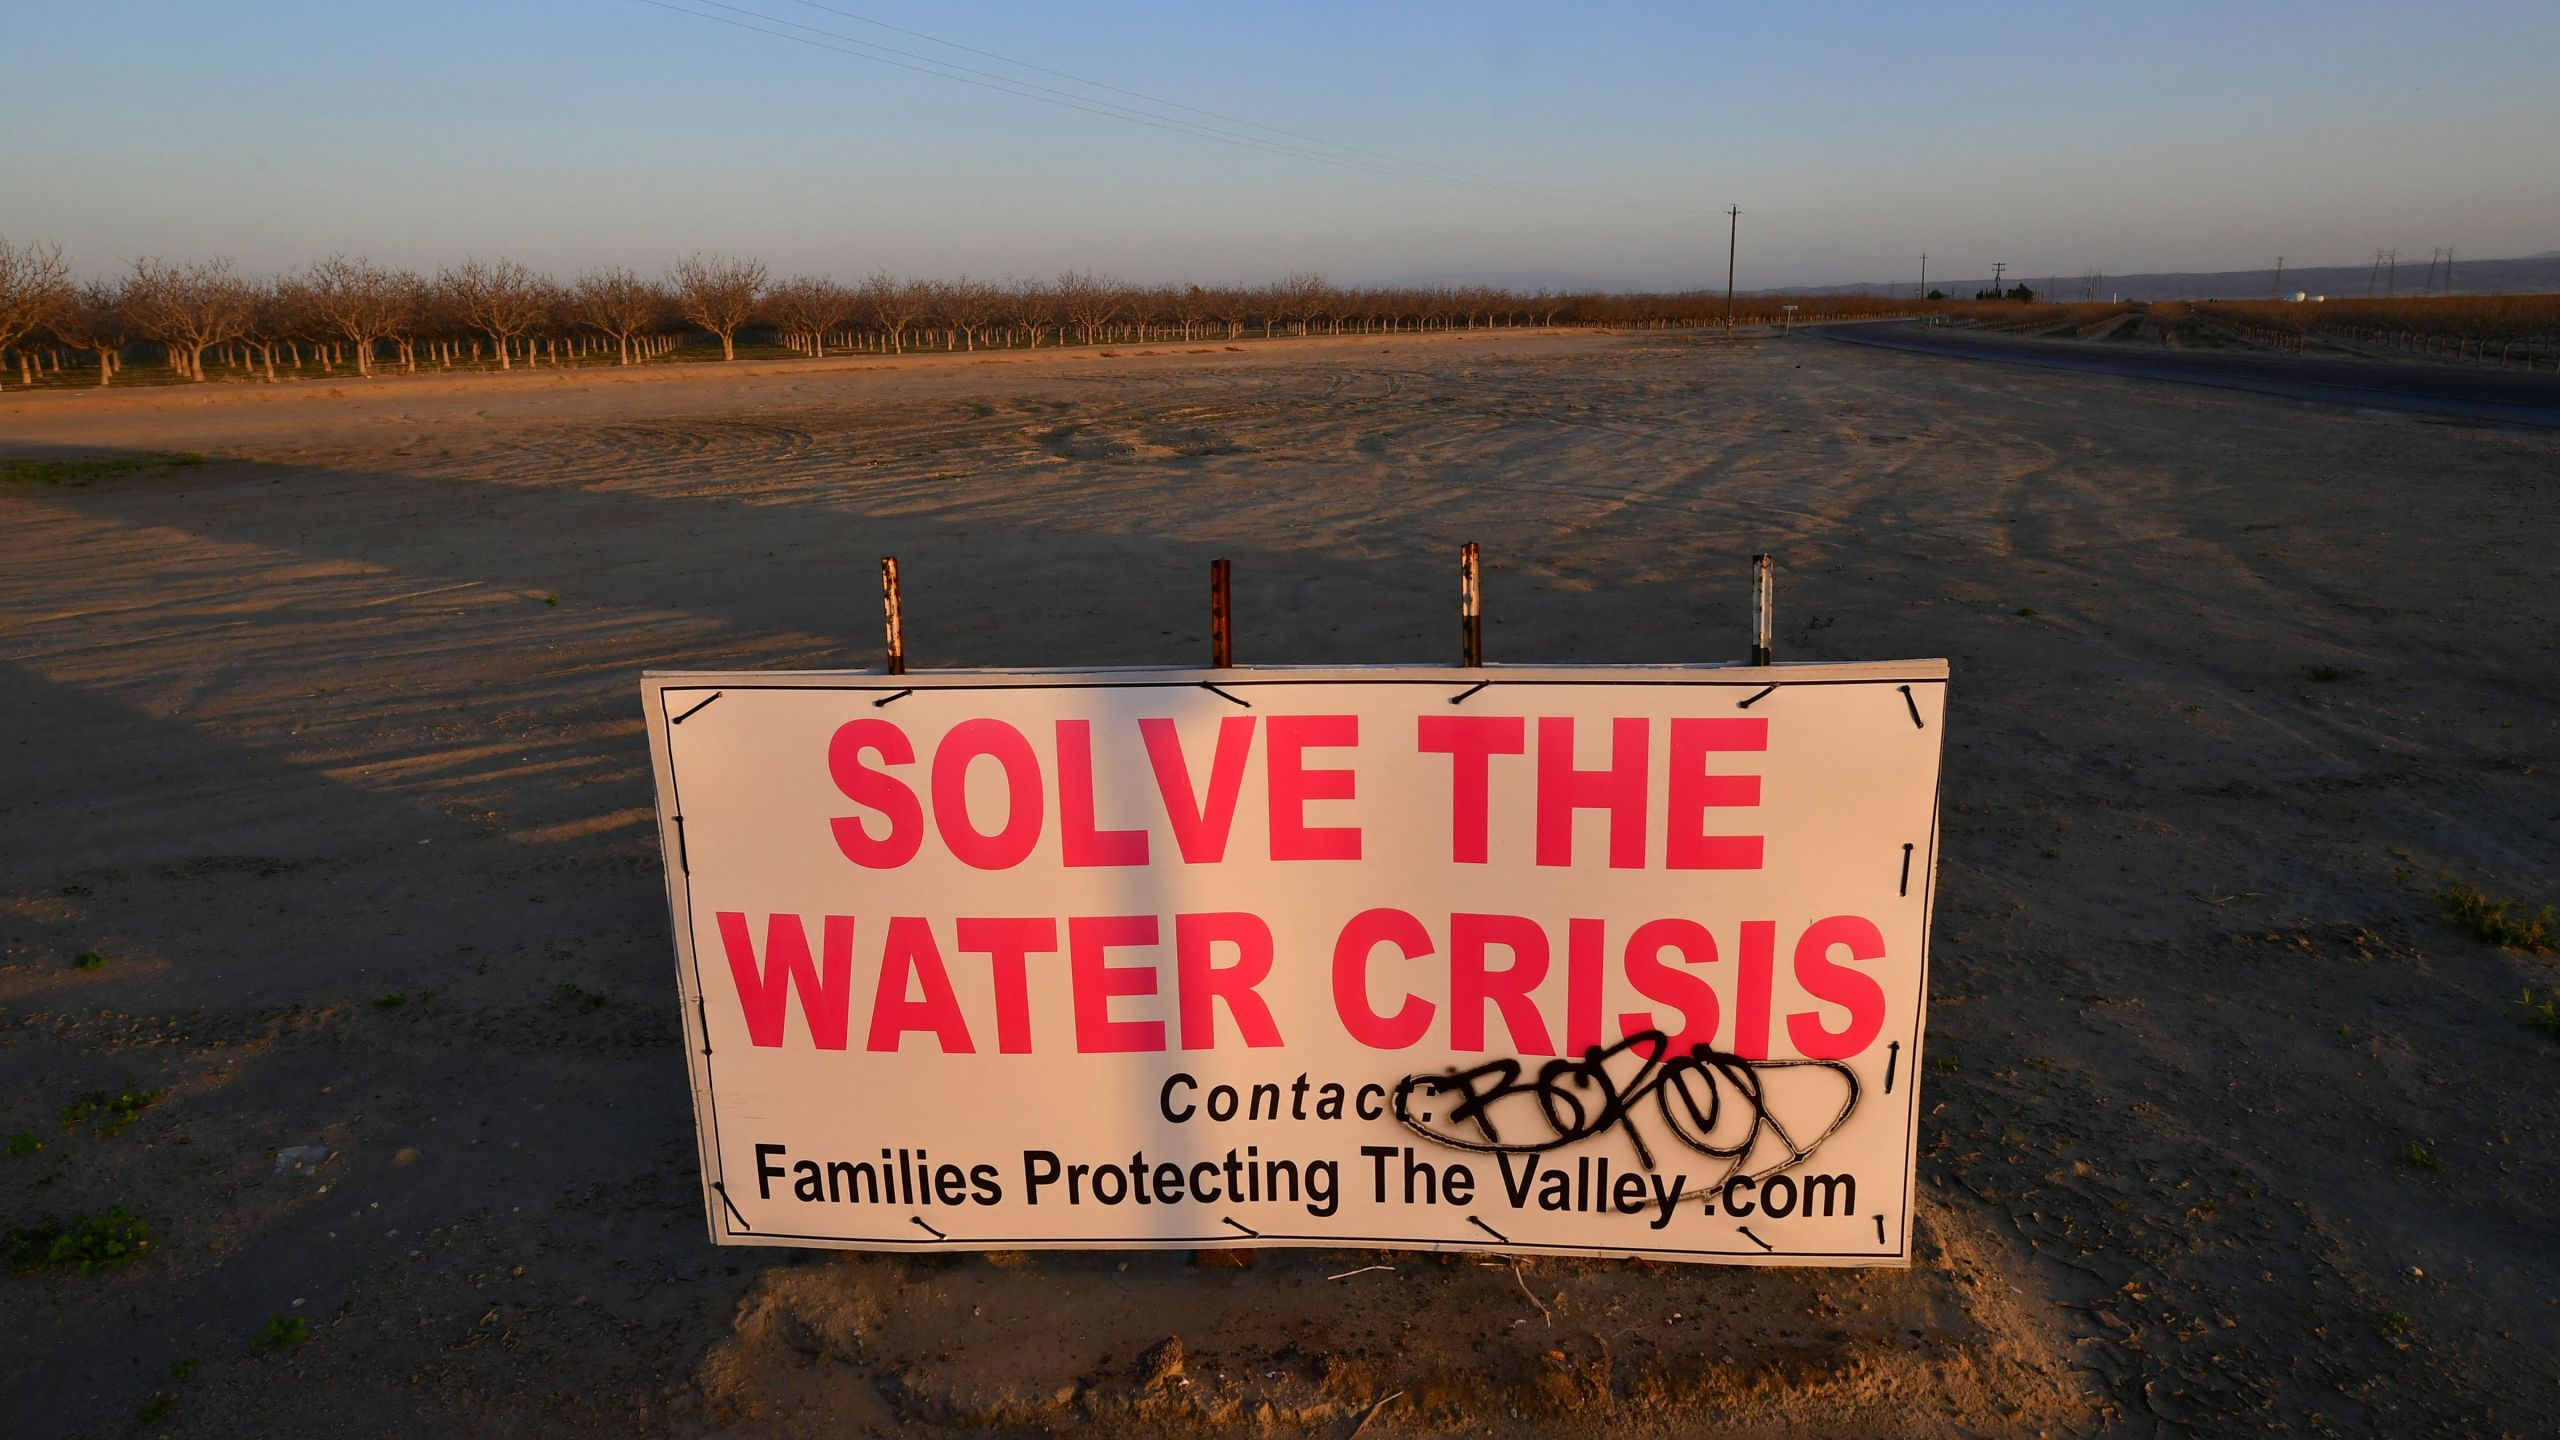 A sign calls for solving California's water crisis on the outskirts of Buttonwillow in California's Kern County on April 2, 2021, one of the top agriculture producing counties in the San Joaquin Valley where dairy, grapes, almonds, strawberries, and pistachios contribute billions to the economy each year. (FREDERIC J. BROWN/AFP via Getty Images)